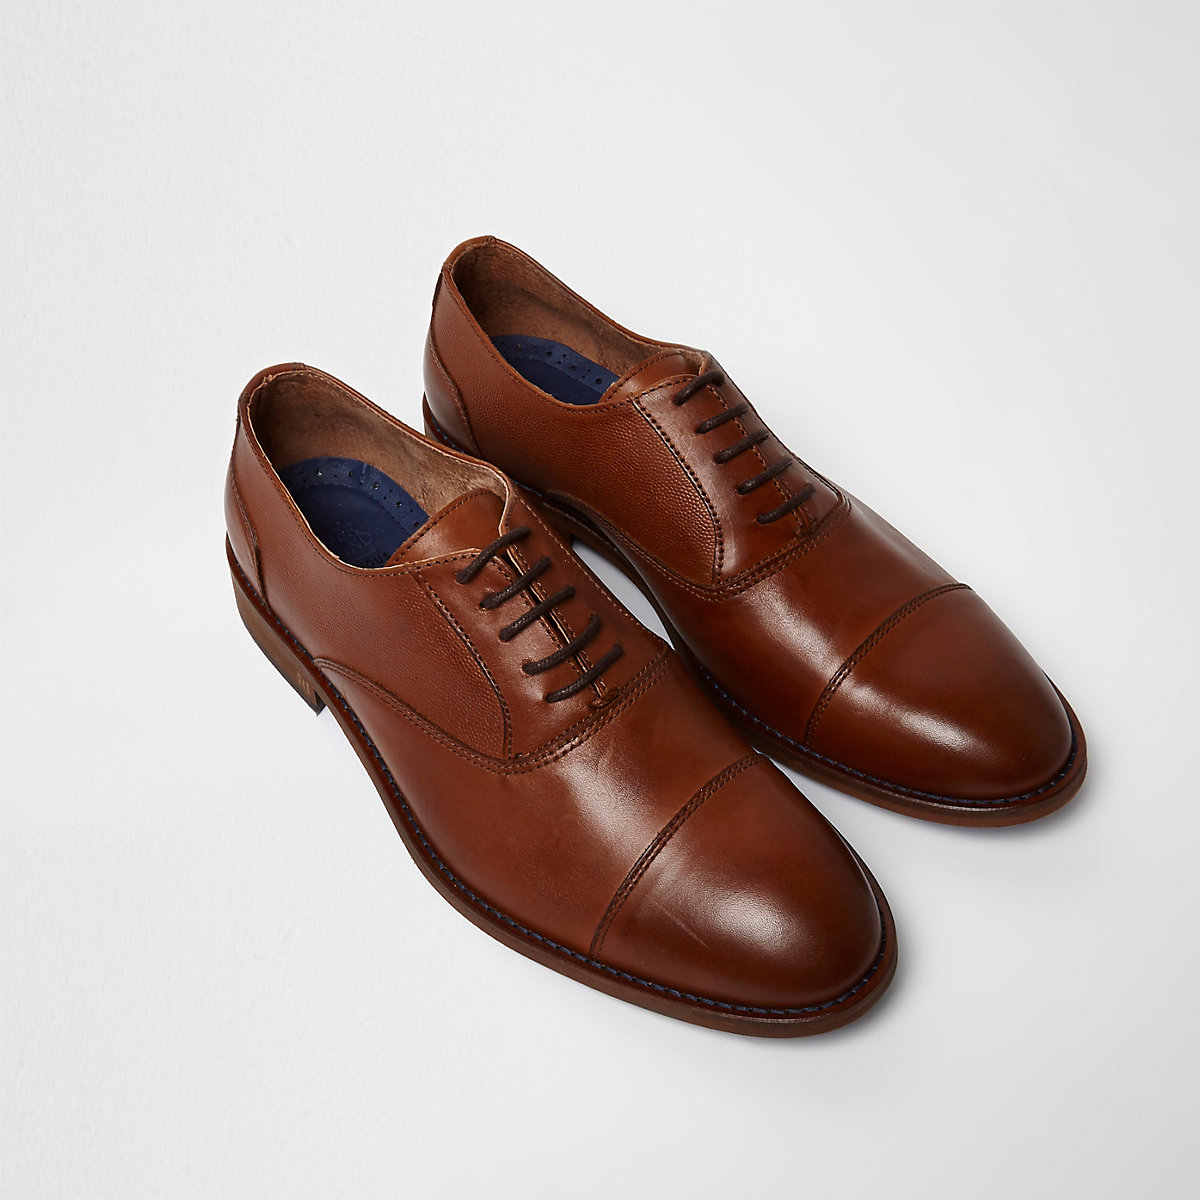 Tan leather toecap lace-up Oxford shoes